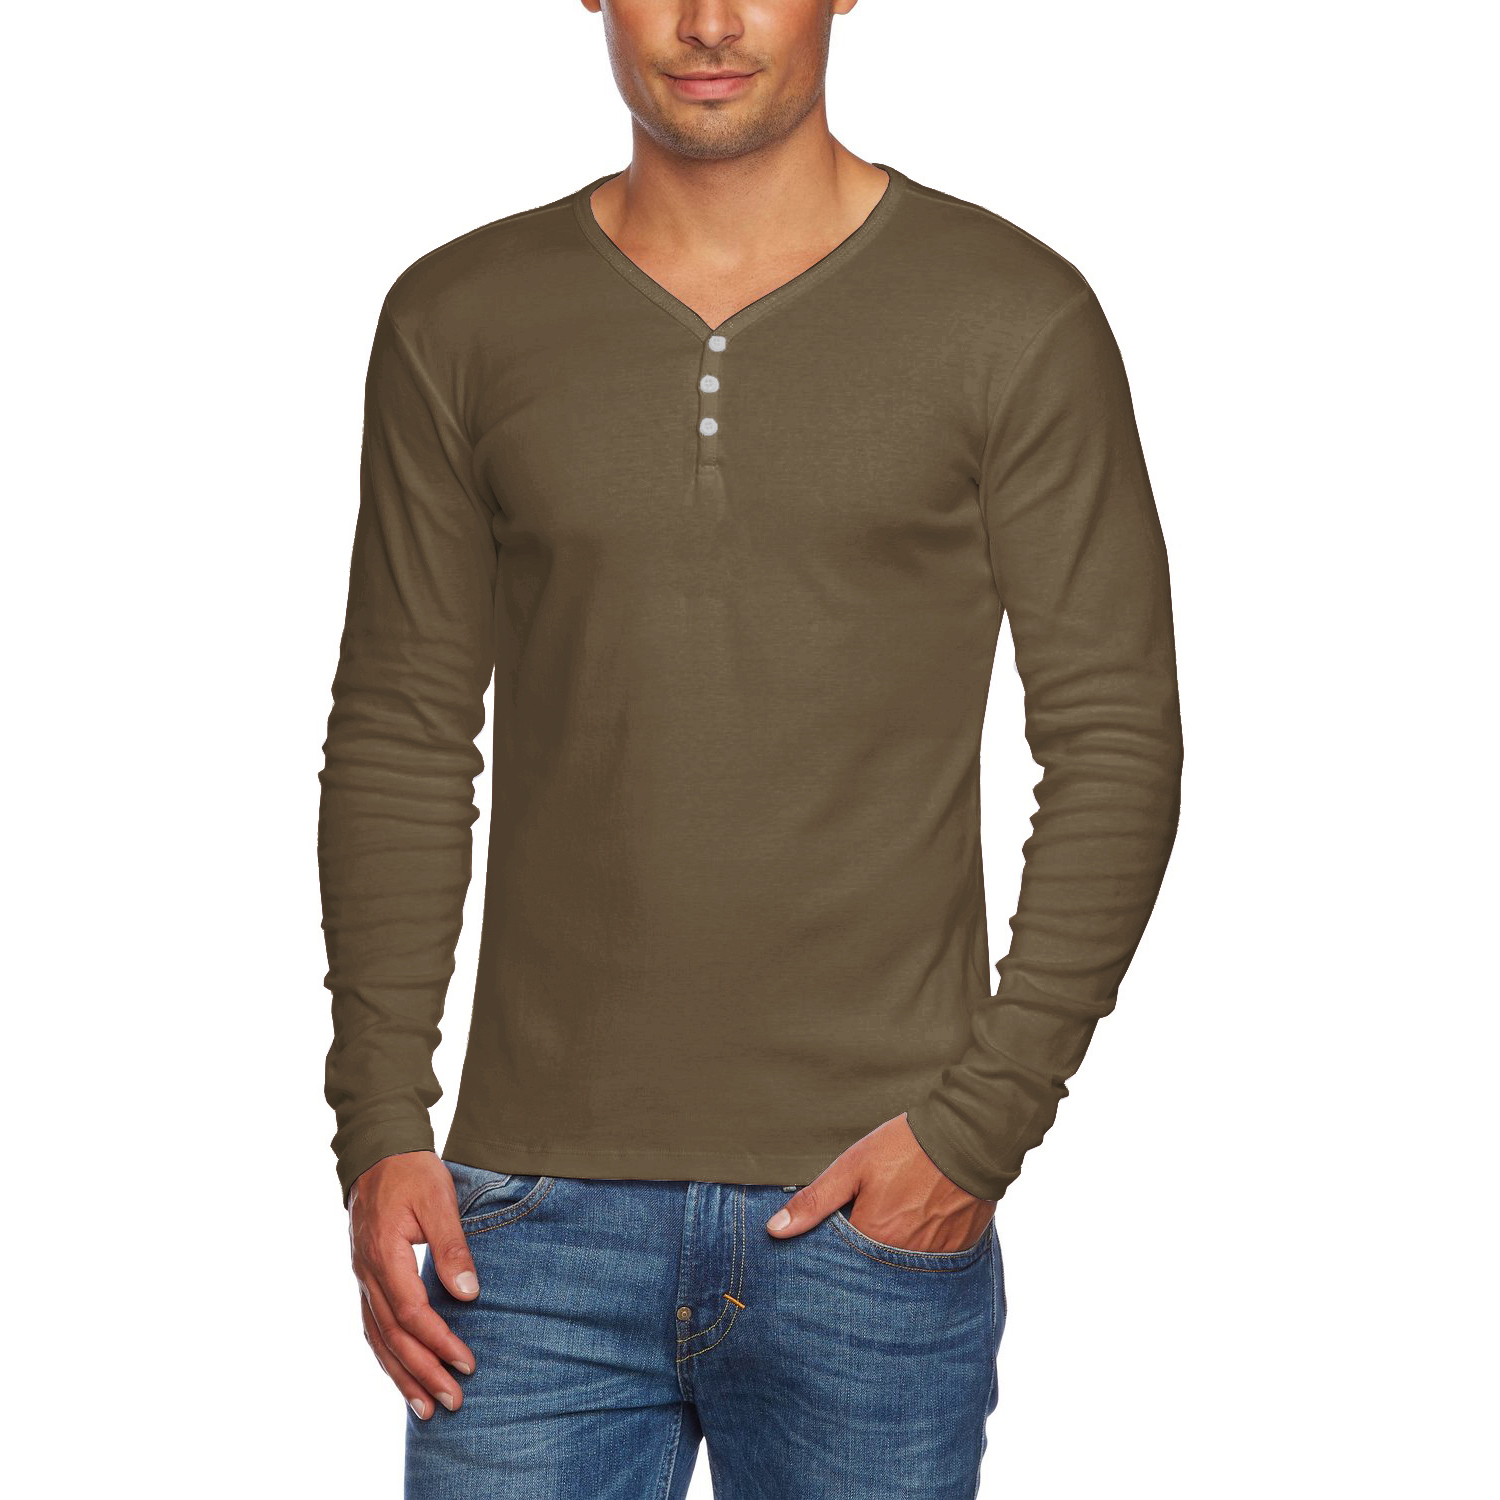 Long Sleeve Shirts for Men alta-men-039-s-slim-fit-v-neck- IEFLTJB